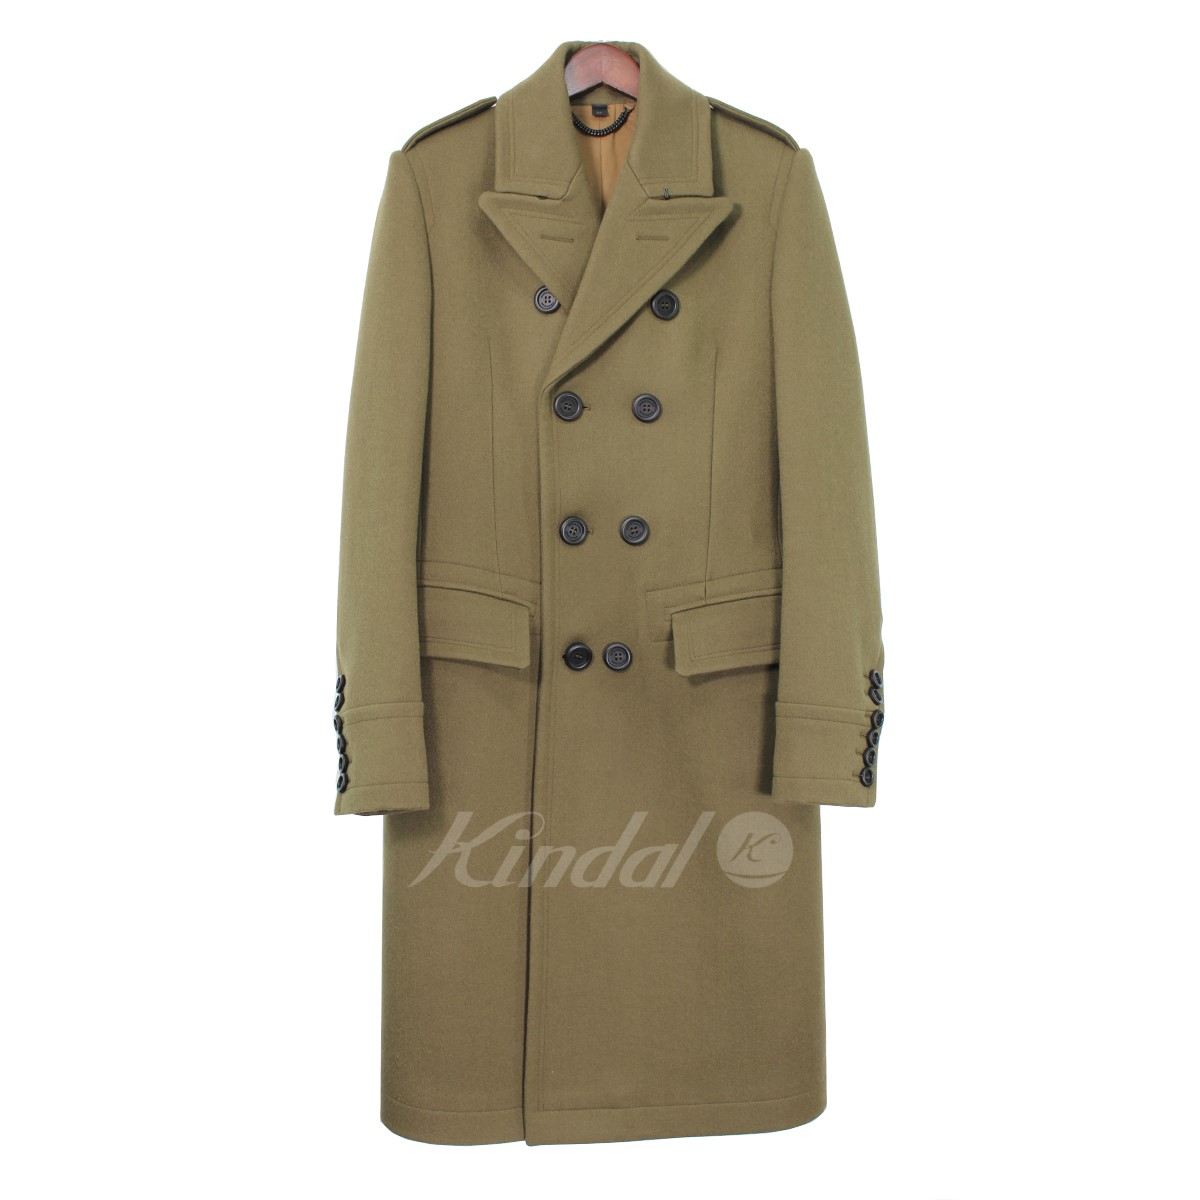 【中古】BURBERRY PRORSUM COLLECTION ミリタリーPコート 【送料無料】 【000457】 【KIND1550】